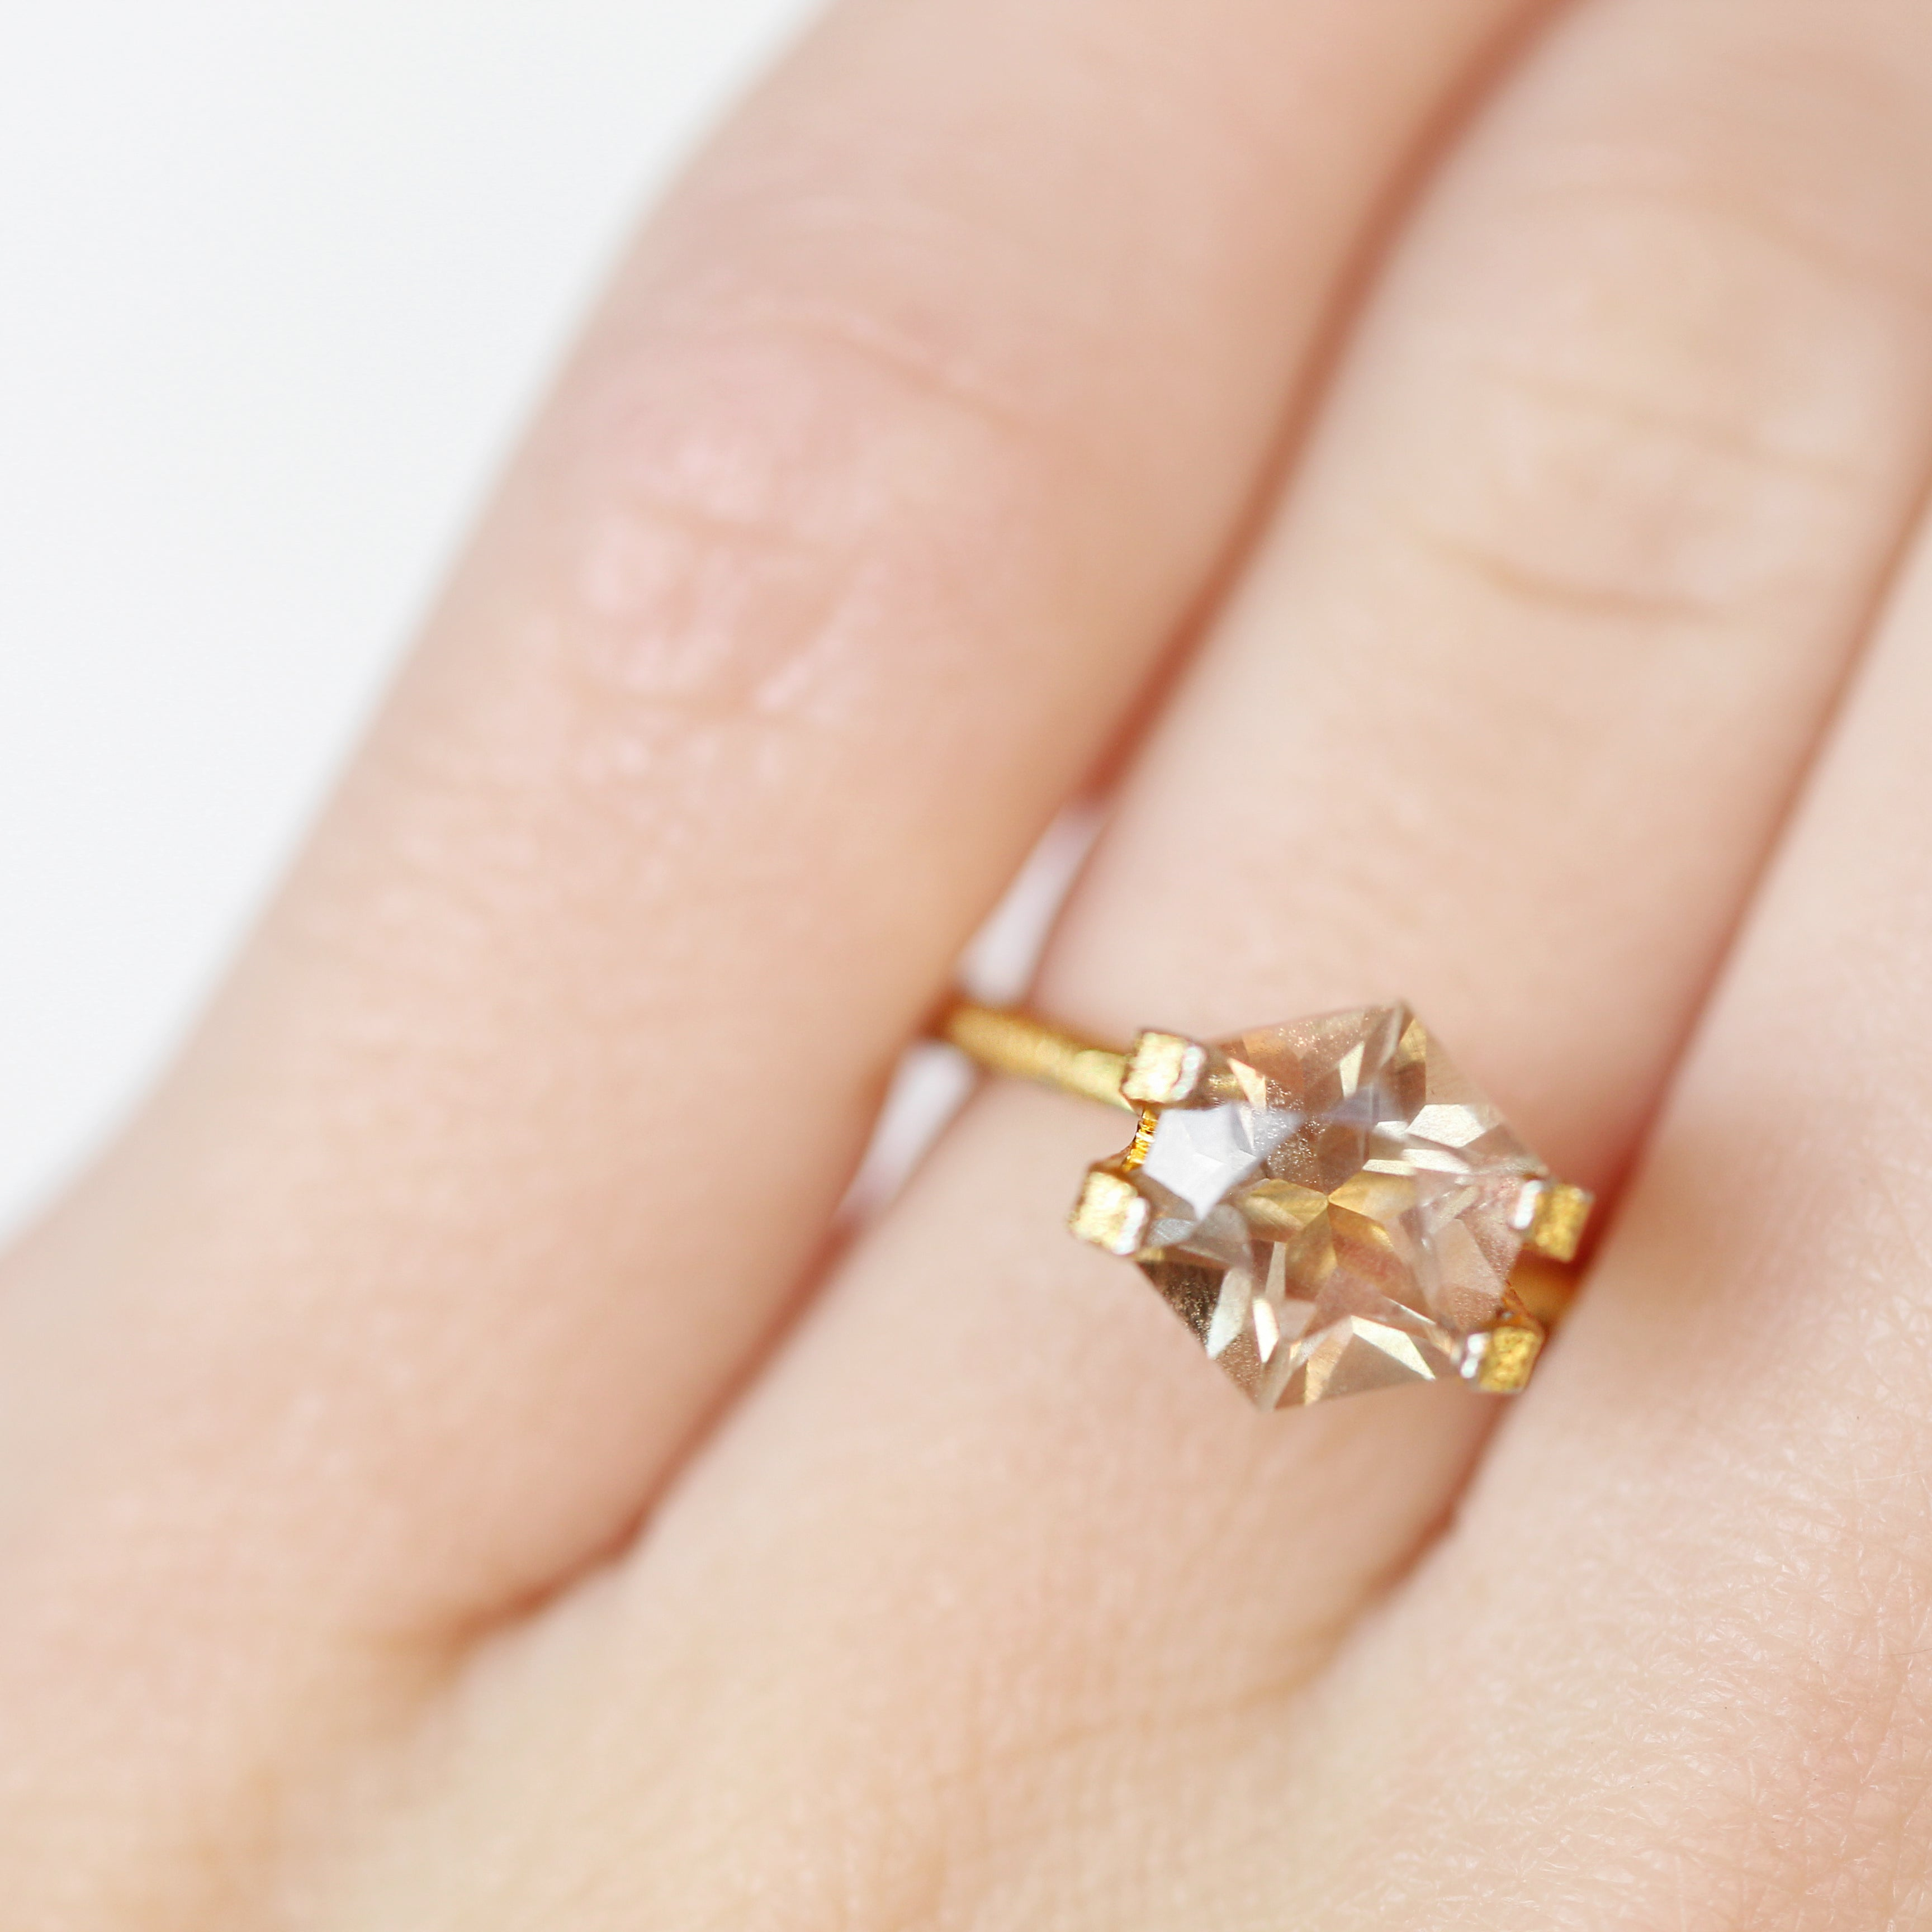 2.03 Carat Hexagon Sunstone- Inventory Code SUNHX203 - Salt & Pepper Celestial Diamond Engagement Rings and Wedding Bands  by Midwinter Co.